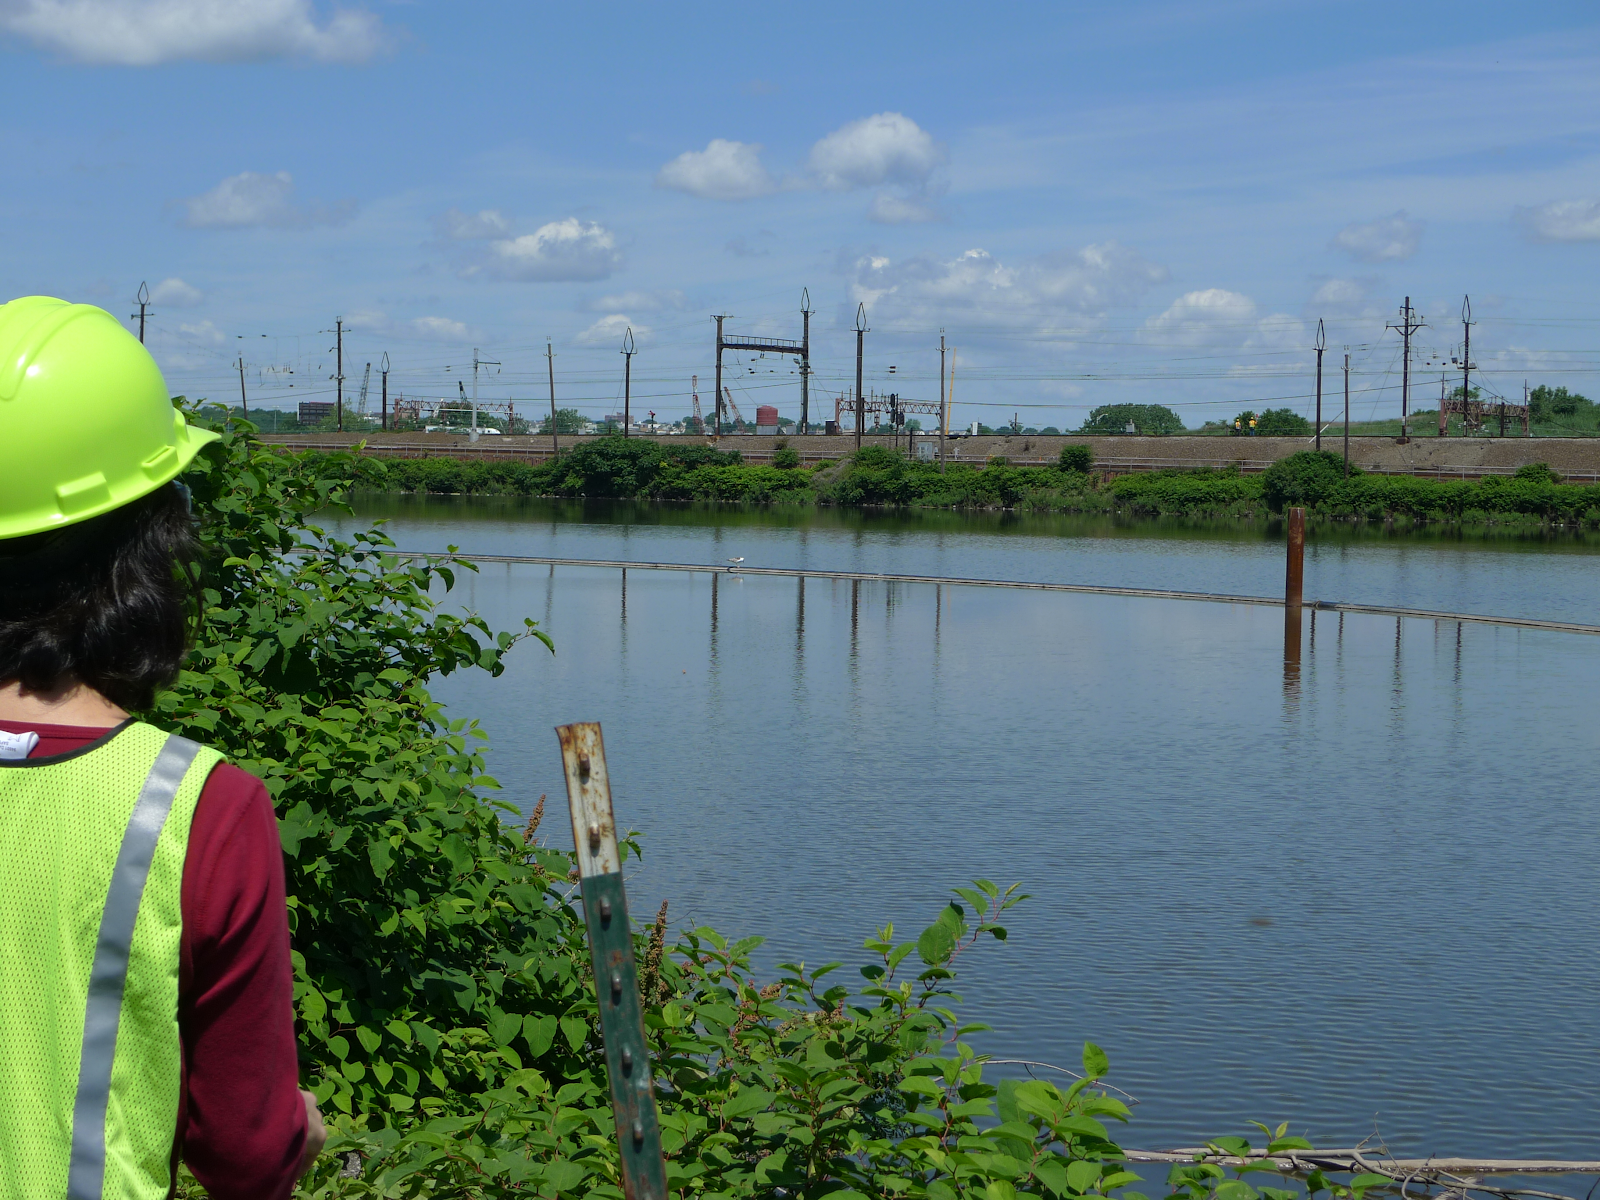 Woman in a vest and hard hat stands at the edge of a river with industrial site in background.